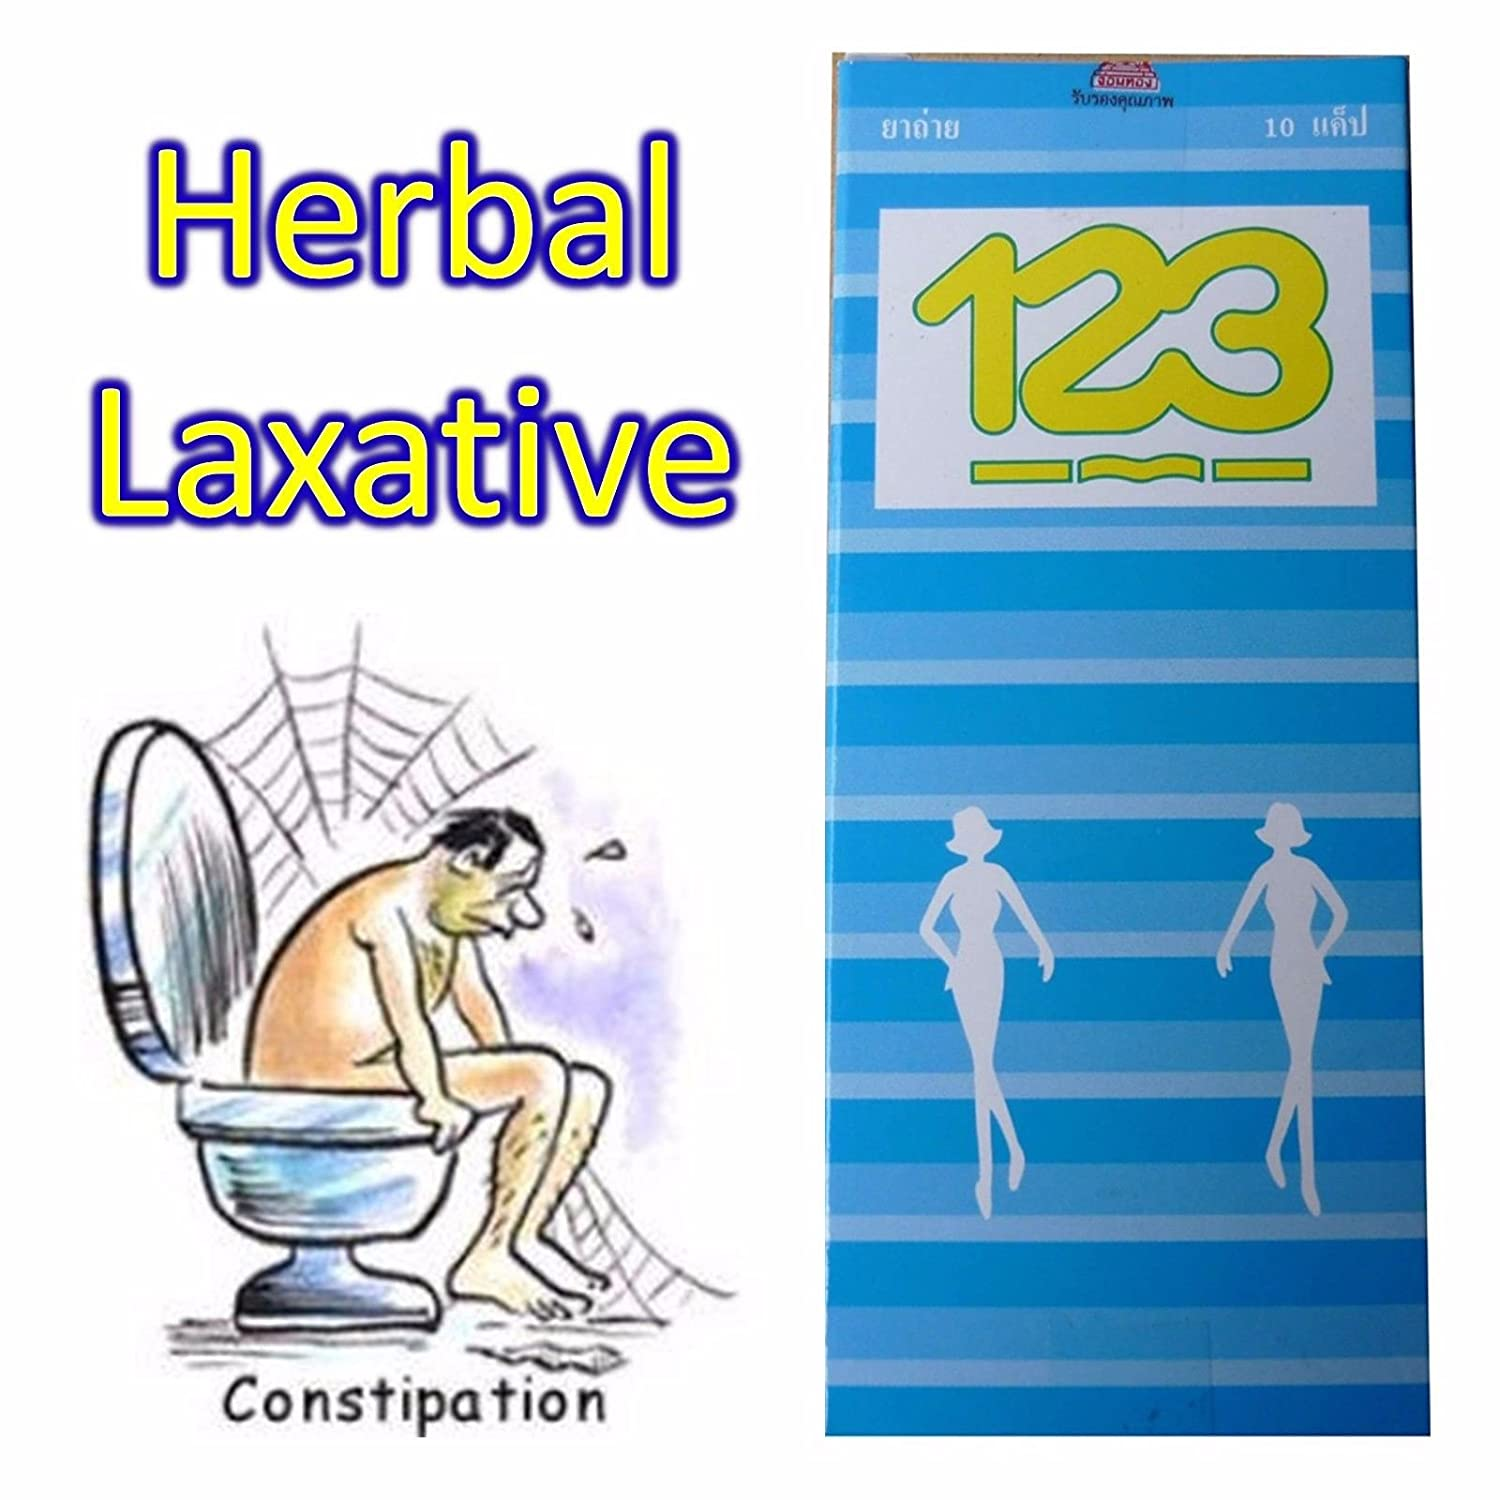 Amazon.com: 123 Natural Herbal Laxative (1 X 10 Capsules Pack Size) Made  From Natural Herb By the Tradional Textbook, Smooth and Safe for Experience  ...